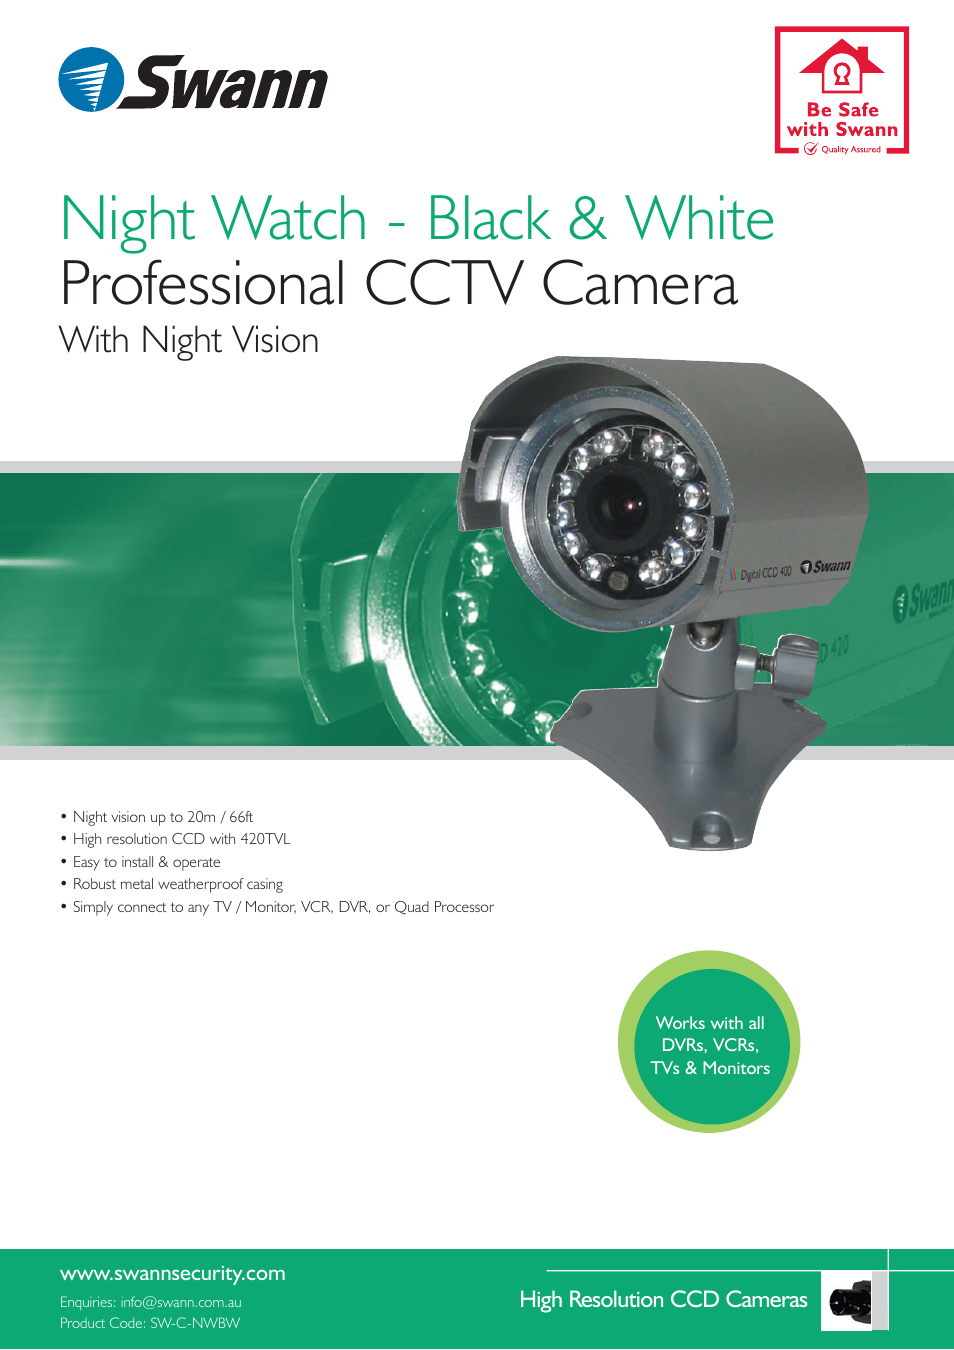 Swann Professional CCTV Camera User Manual | 2 pages